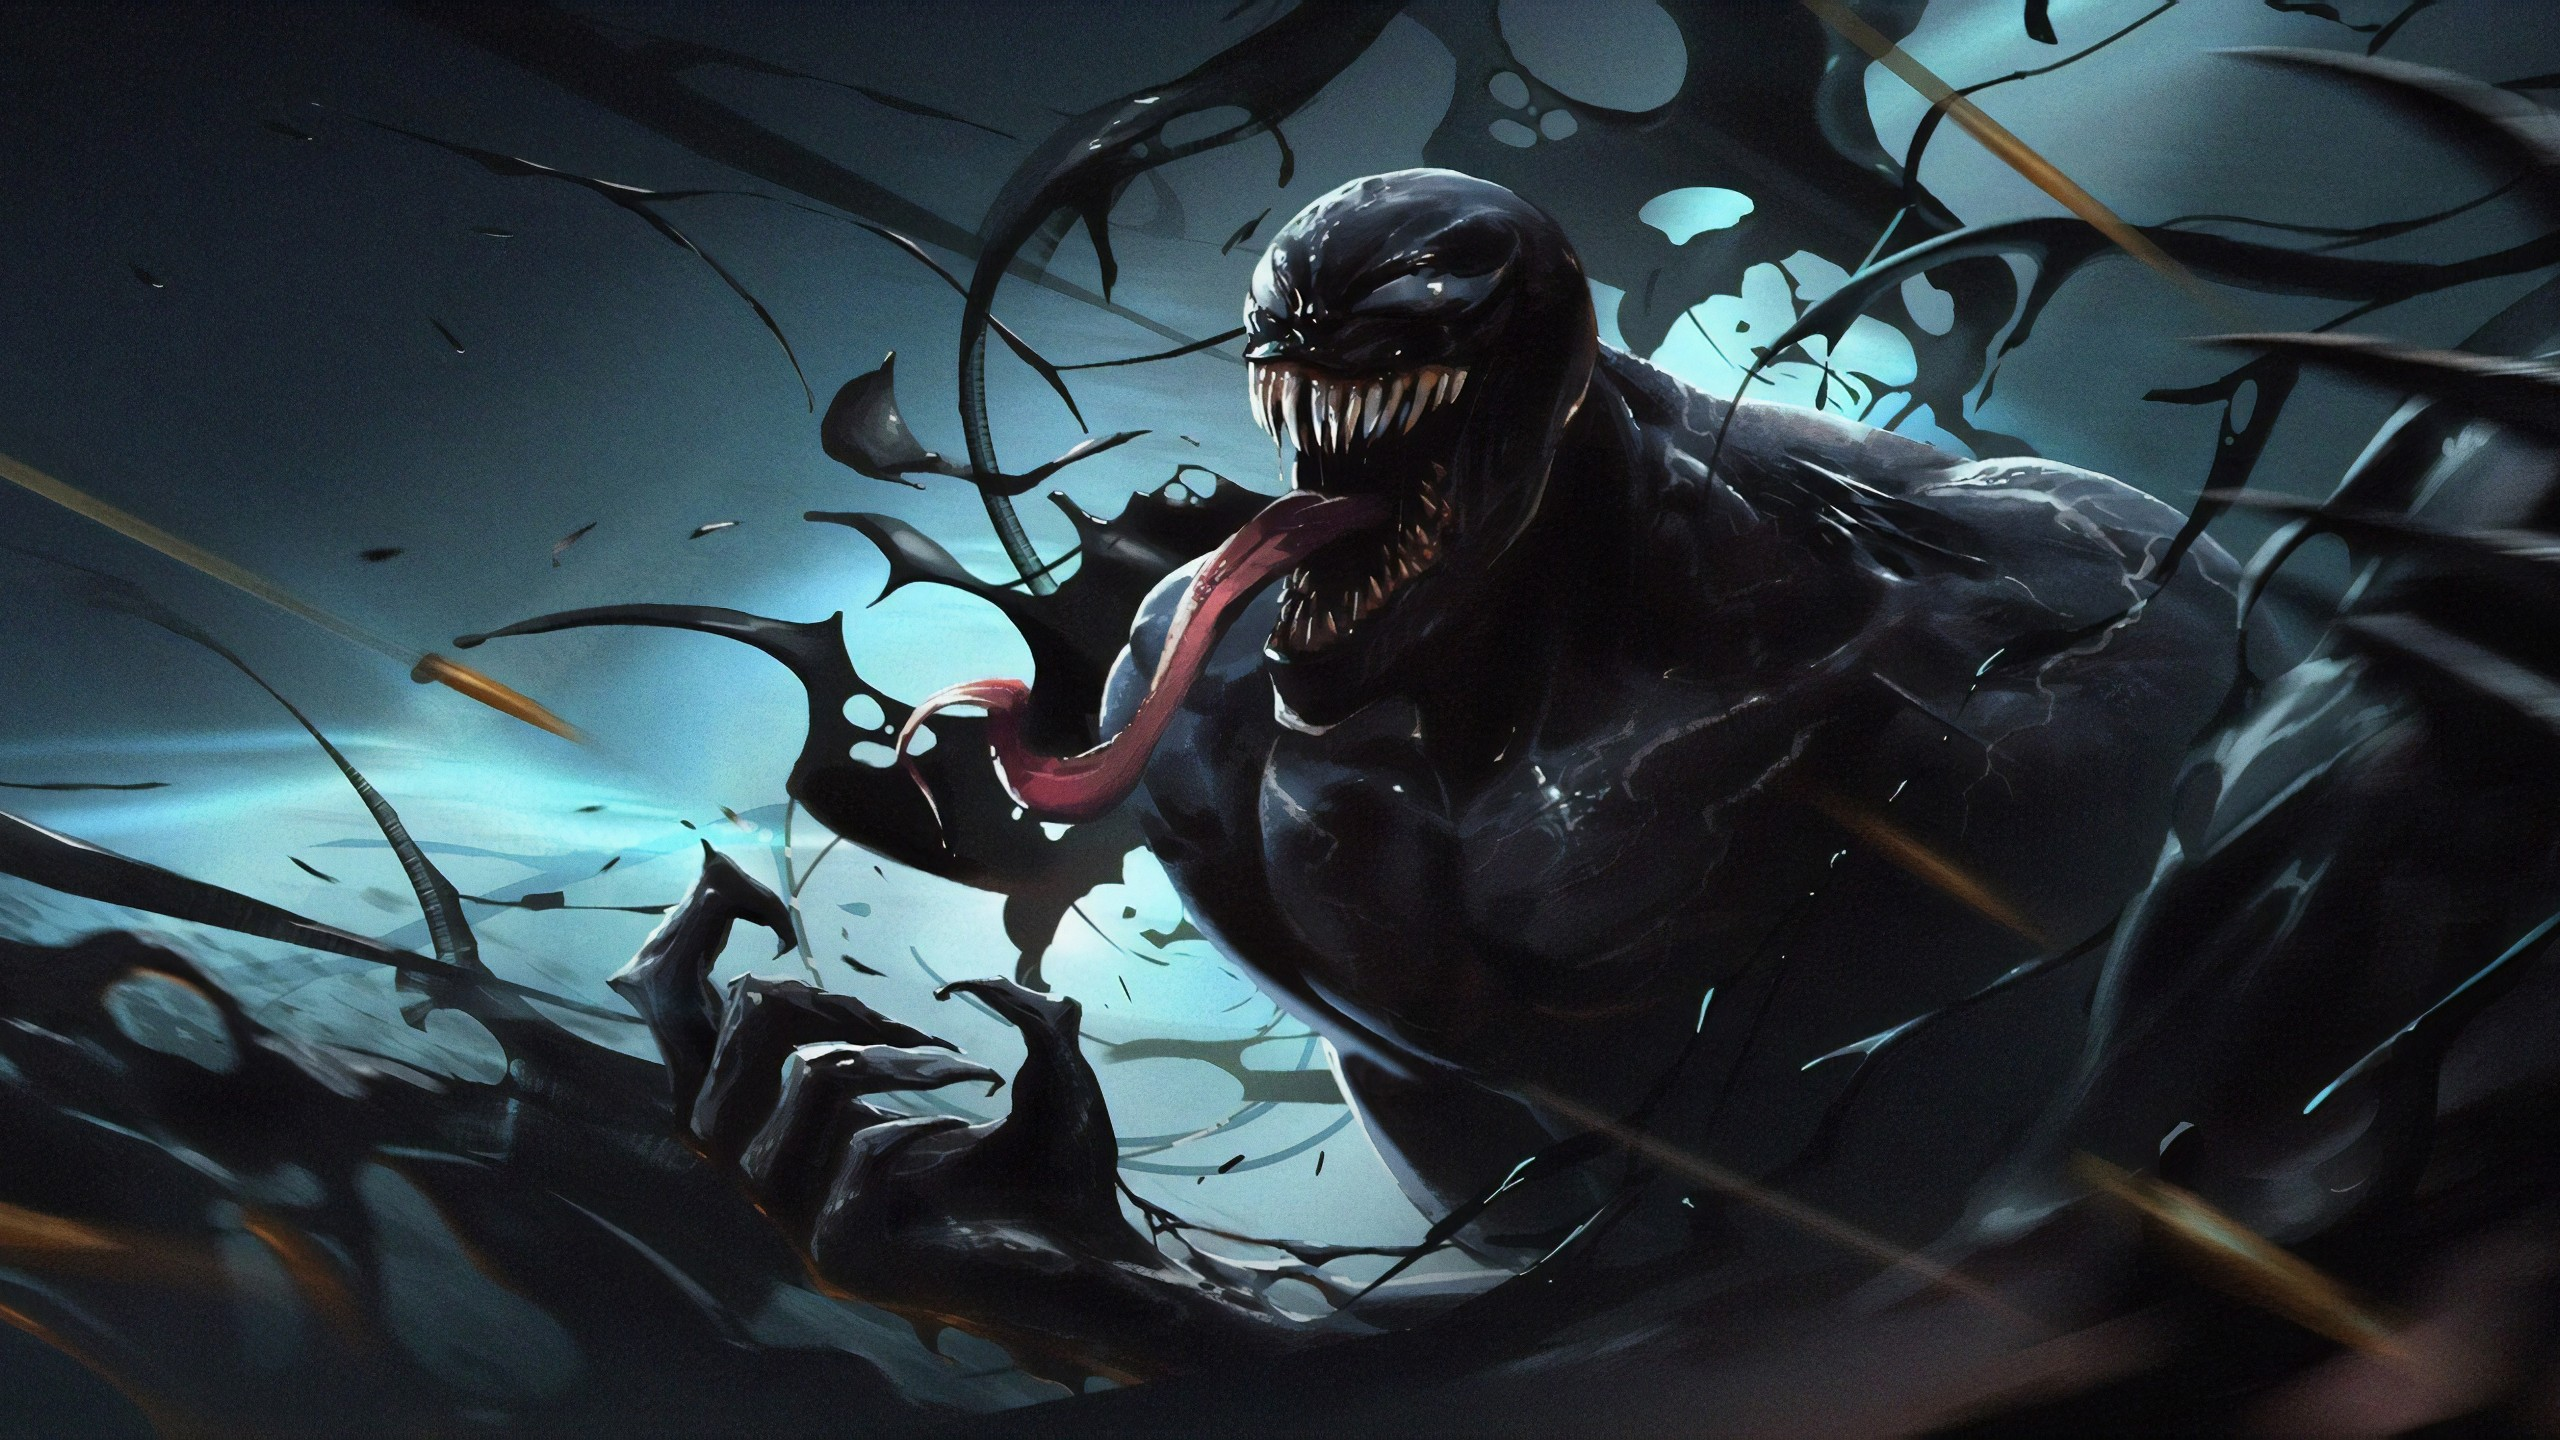 One Punch Man Wallpaper Iphone Venom Artwork 5k Wallpapers Hd Wallpapers Id 27016